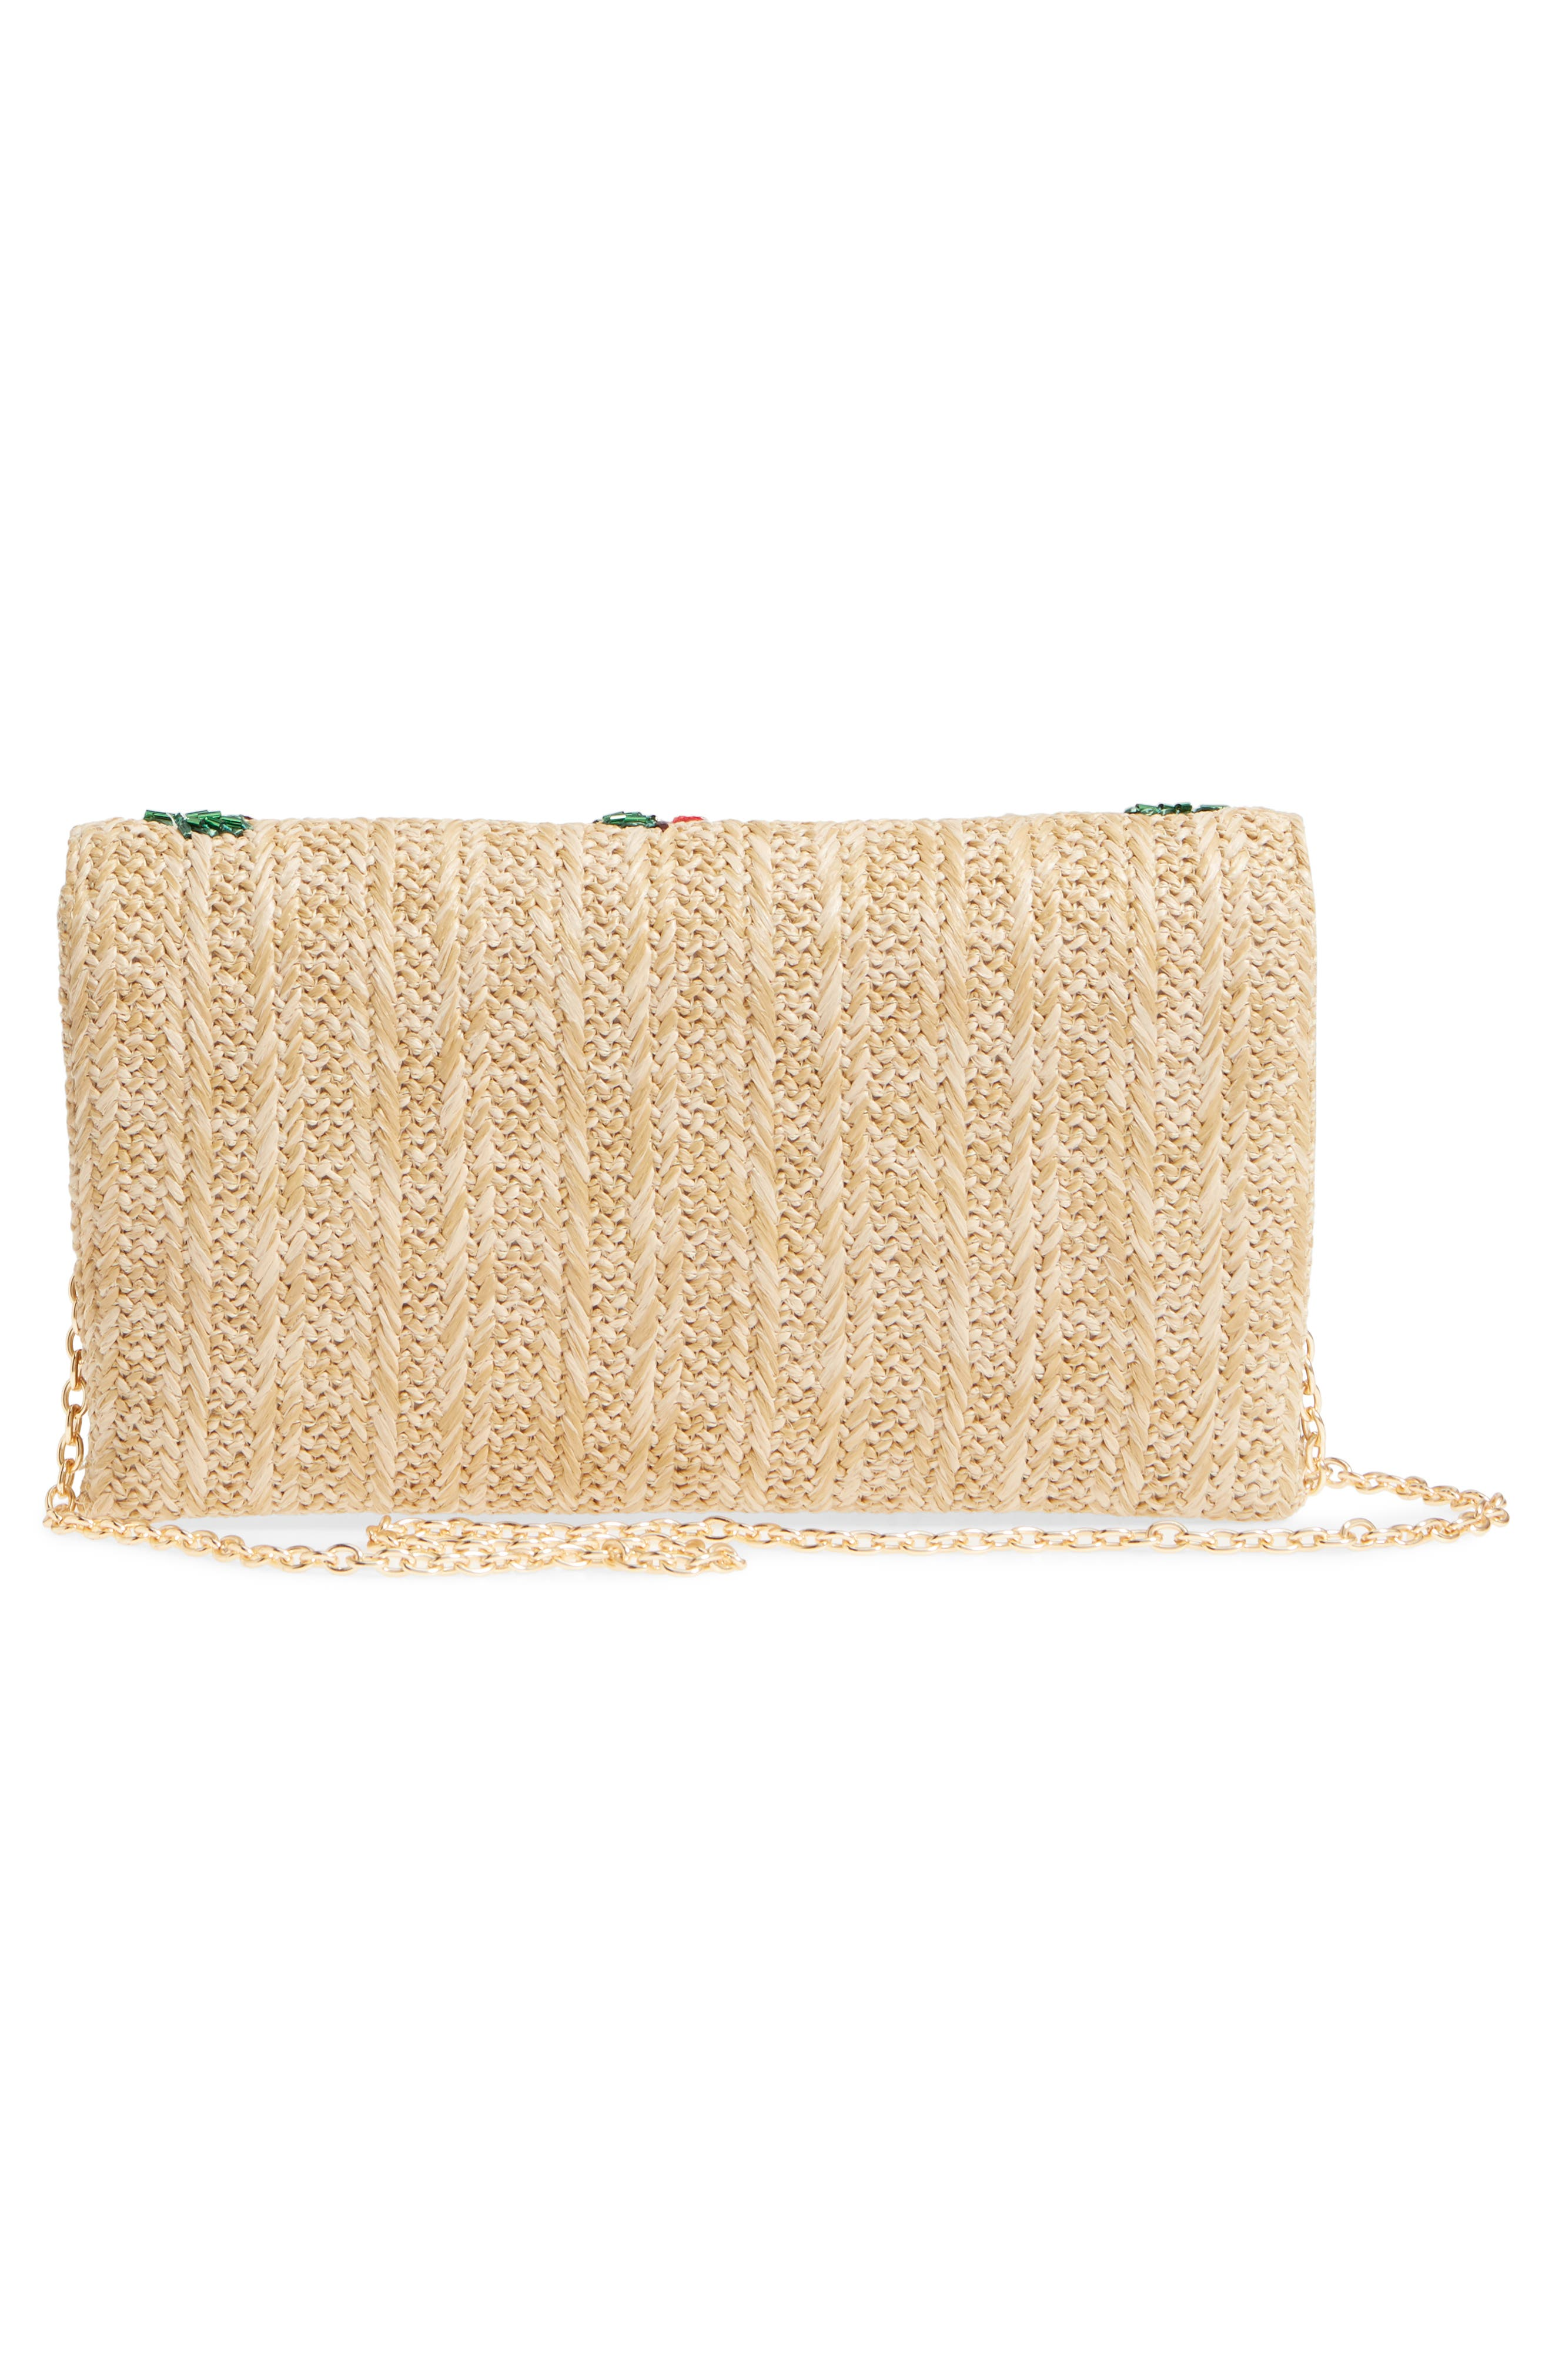 Cherry Embellished Straw Envelope Clutch,                             Alternate thumbnail 3, color,                             Natural